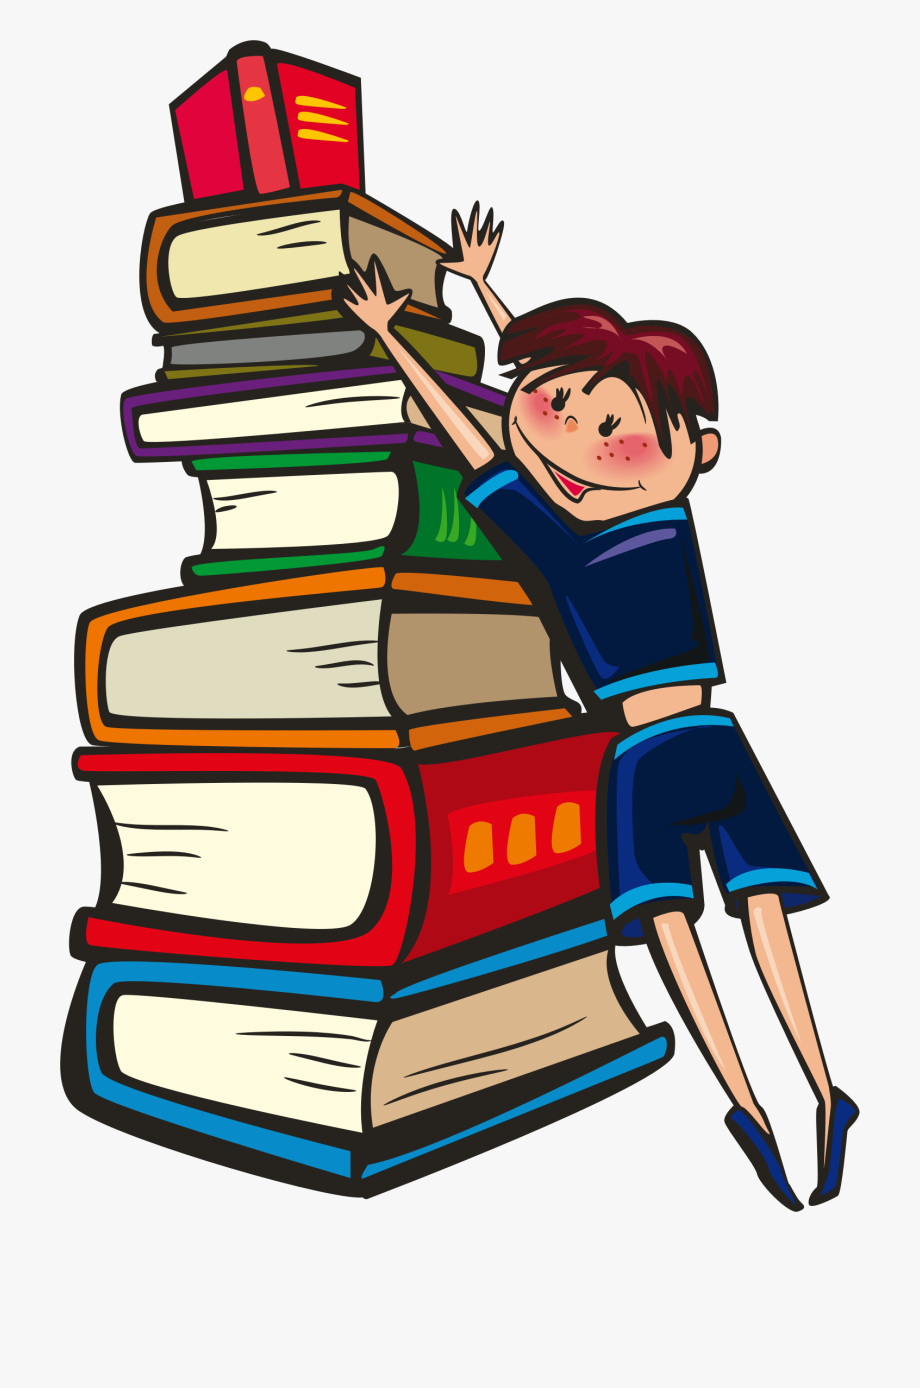 Animated book clipart.